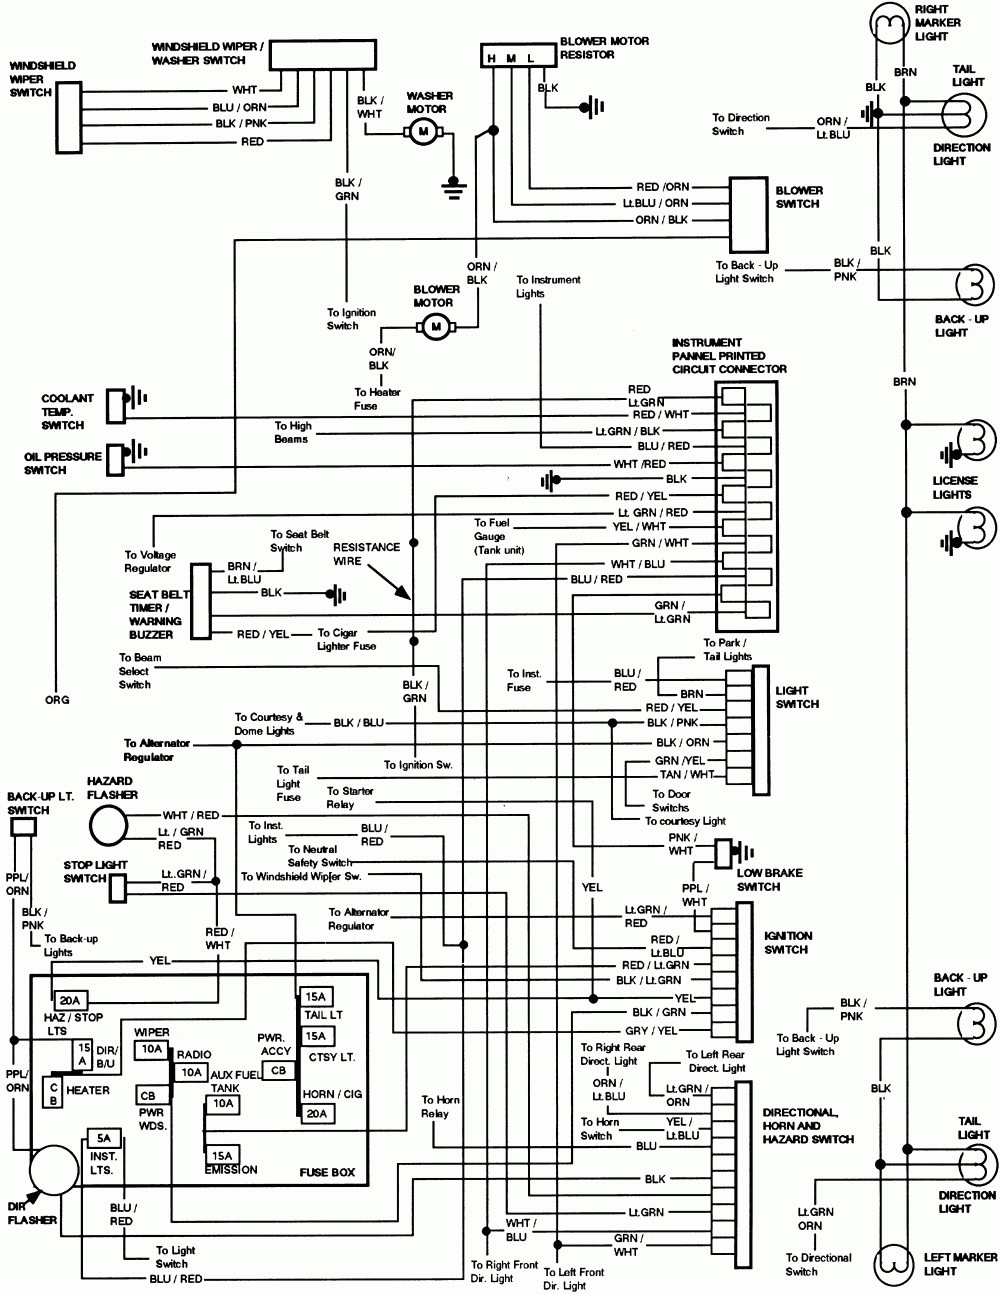 Ford F150 Ac Wiring Diagram Diy Wiring Diagrams \u2022 1998 Ford Taurus AC  Wiring Diagram 2003 Ford F 150 Ac Wiring Diagram